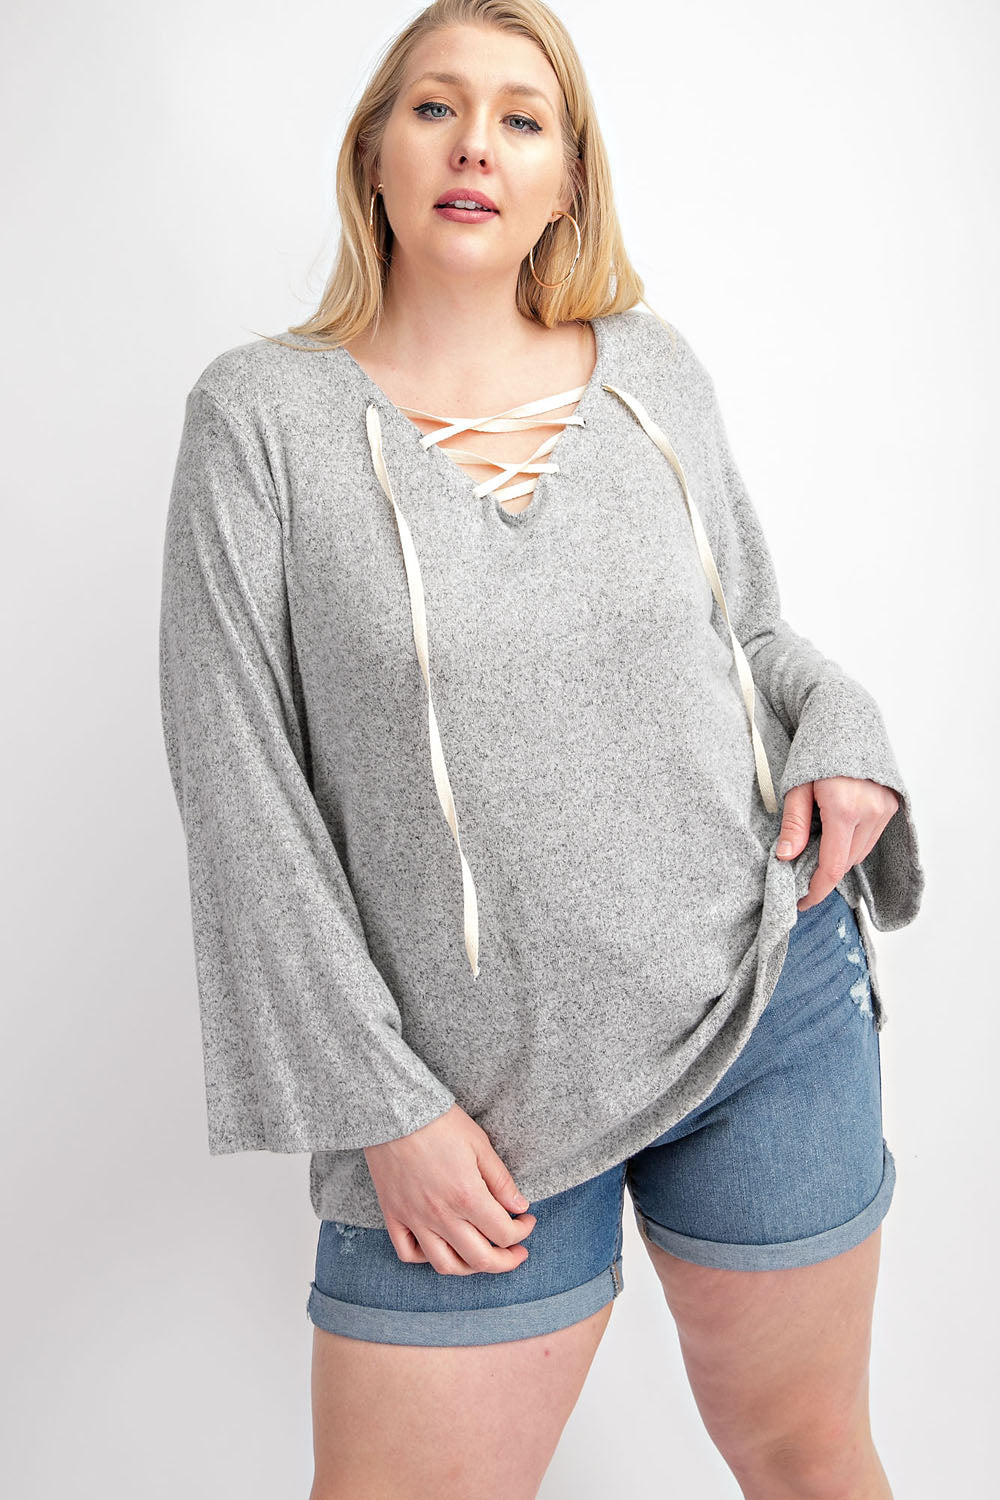 367- Lace Up Soft Sweatshirt